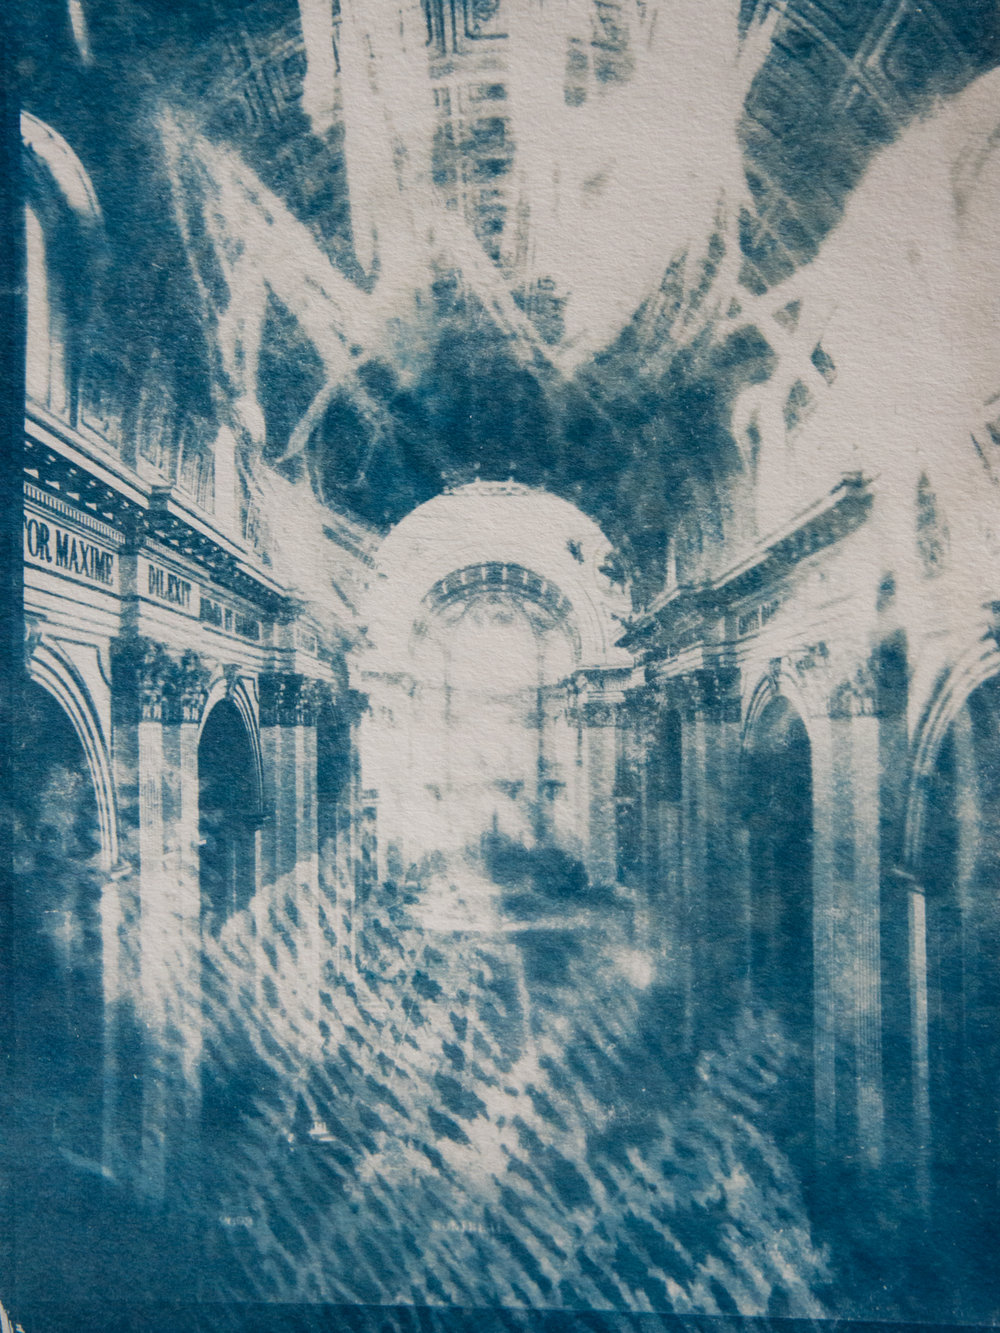 Marie Craig,  Dilexit 1,  cyanotype on paper, 12x9